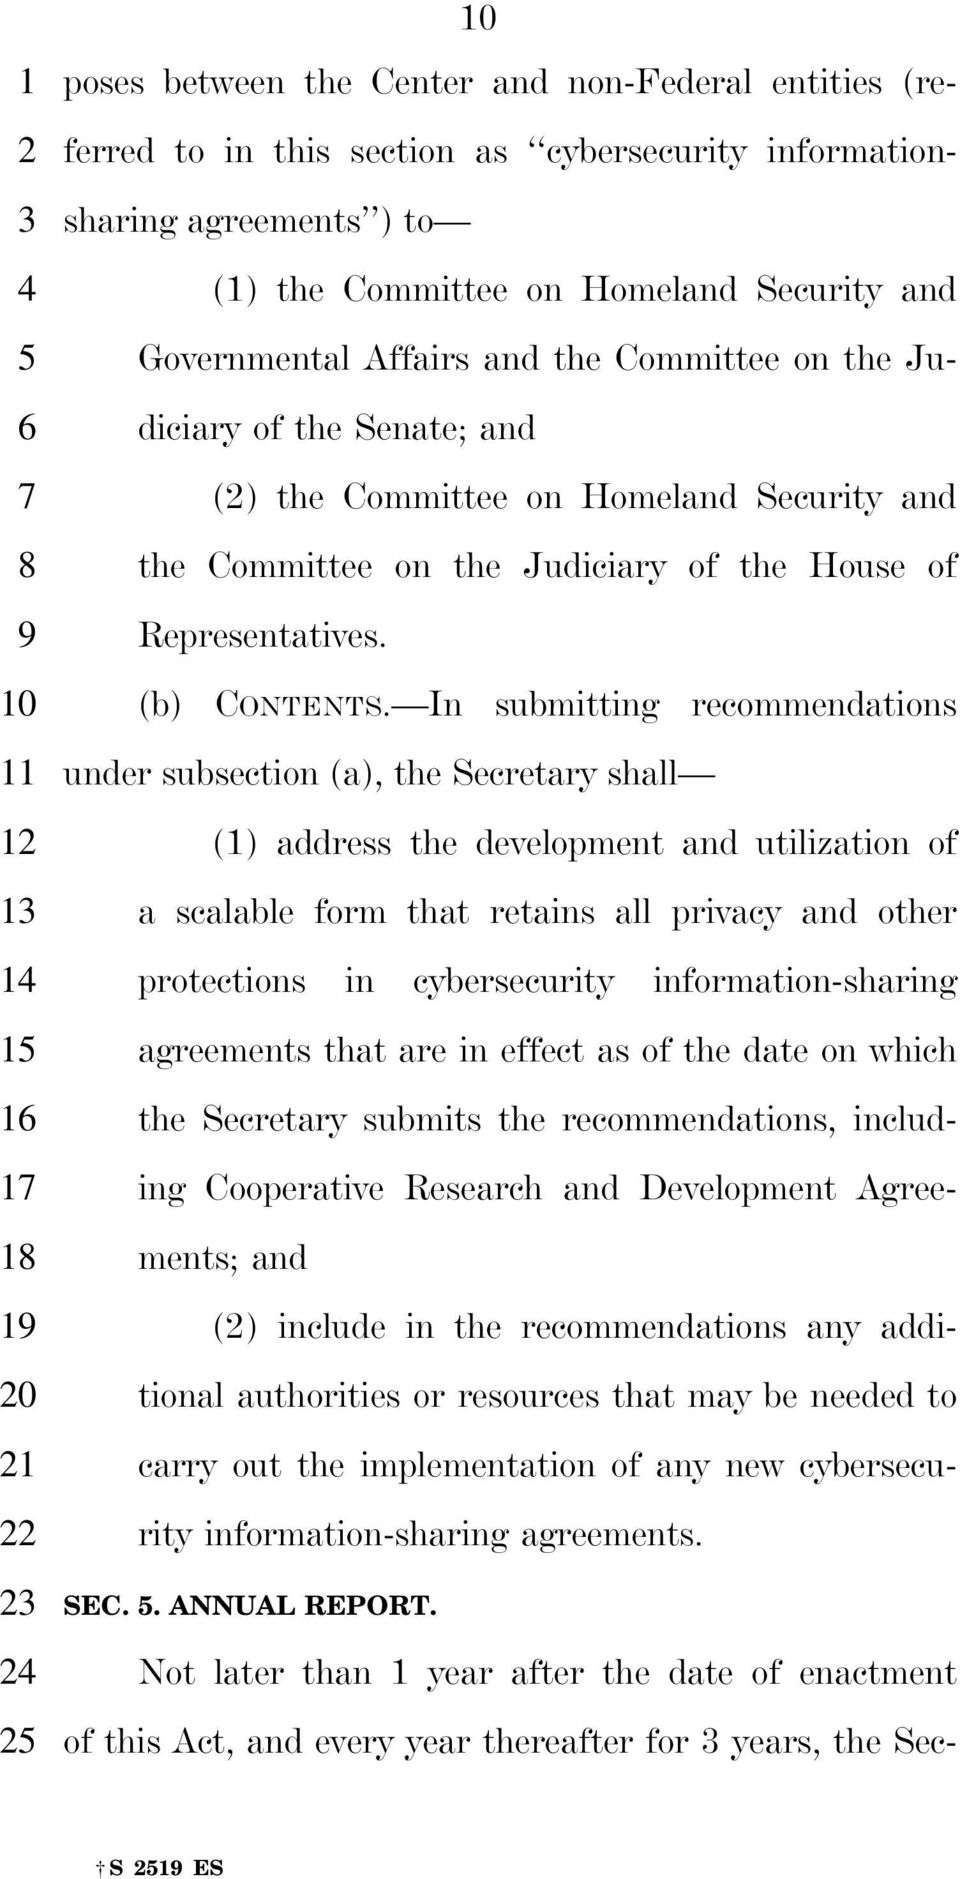 In submitting recommendations under subsection (a), the Secretary shall (1) address the development and utilization of a scalable form that retains all privacy and other protections in cybersecurity